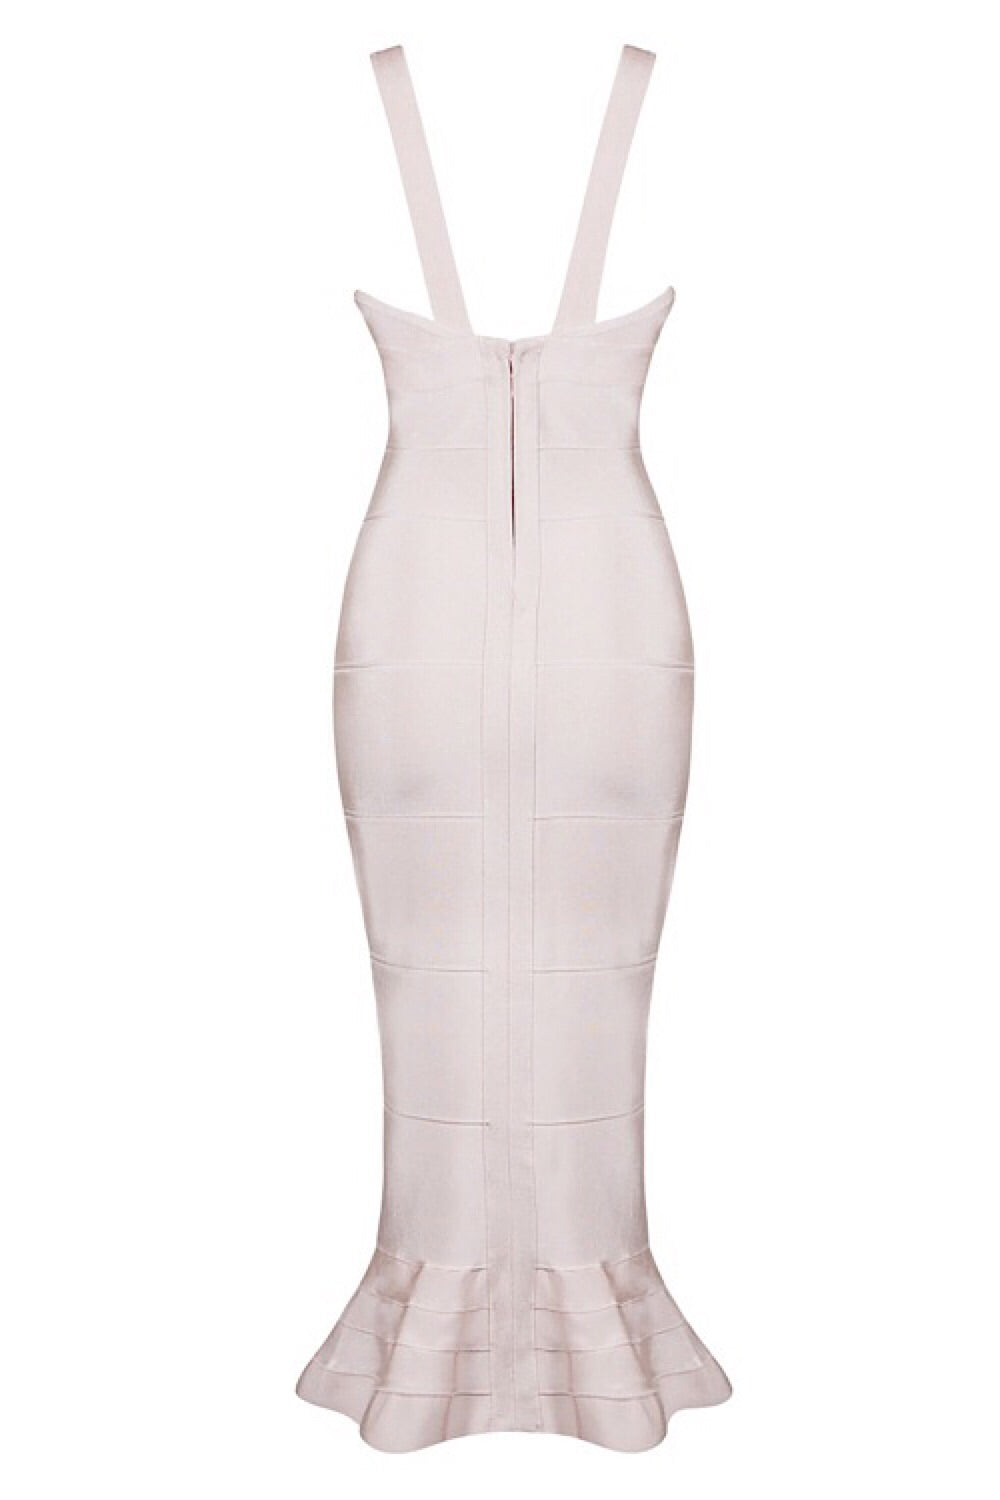 Gigi Nude Bandage Dress